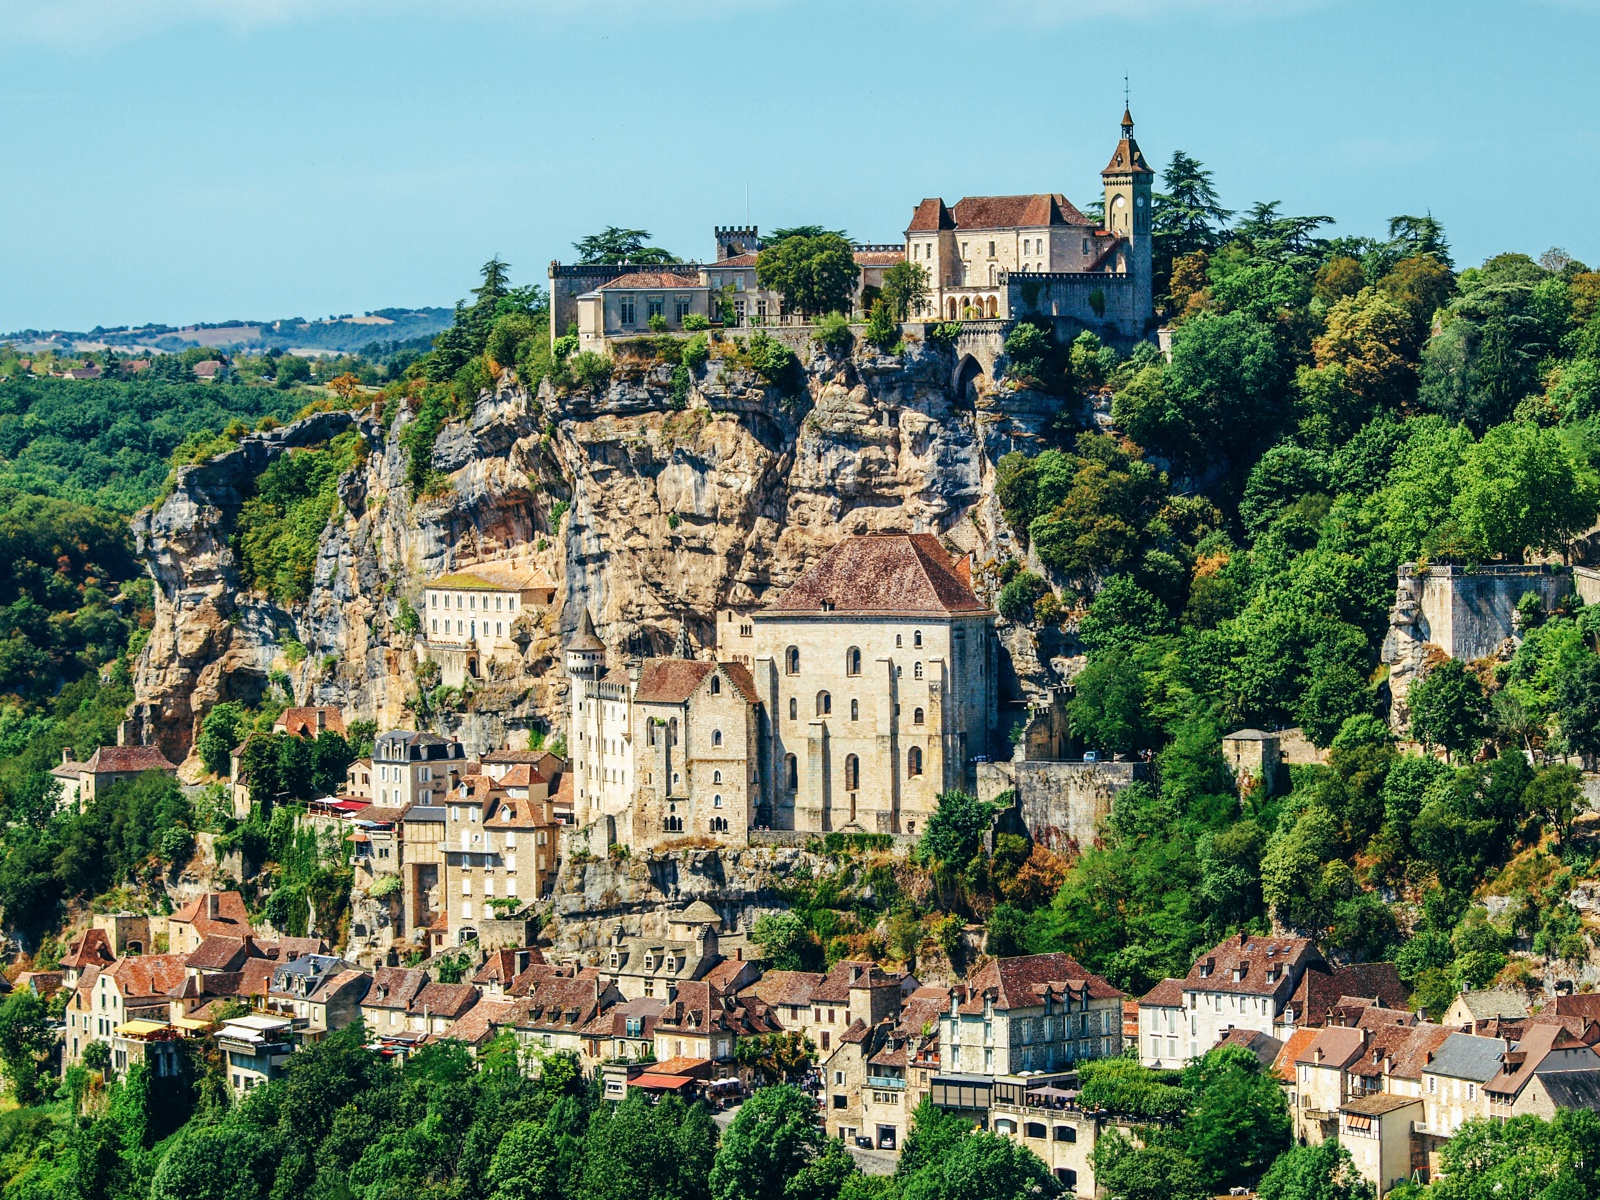 Have You Ever Heard Of Gouffre de Padirac In The South Of France? (2)